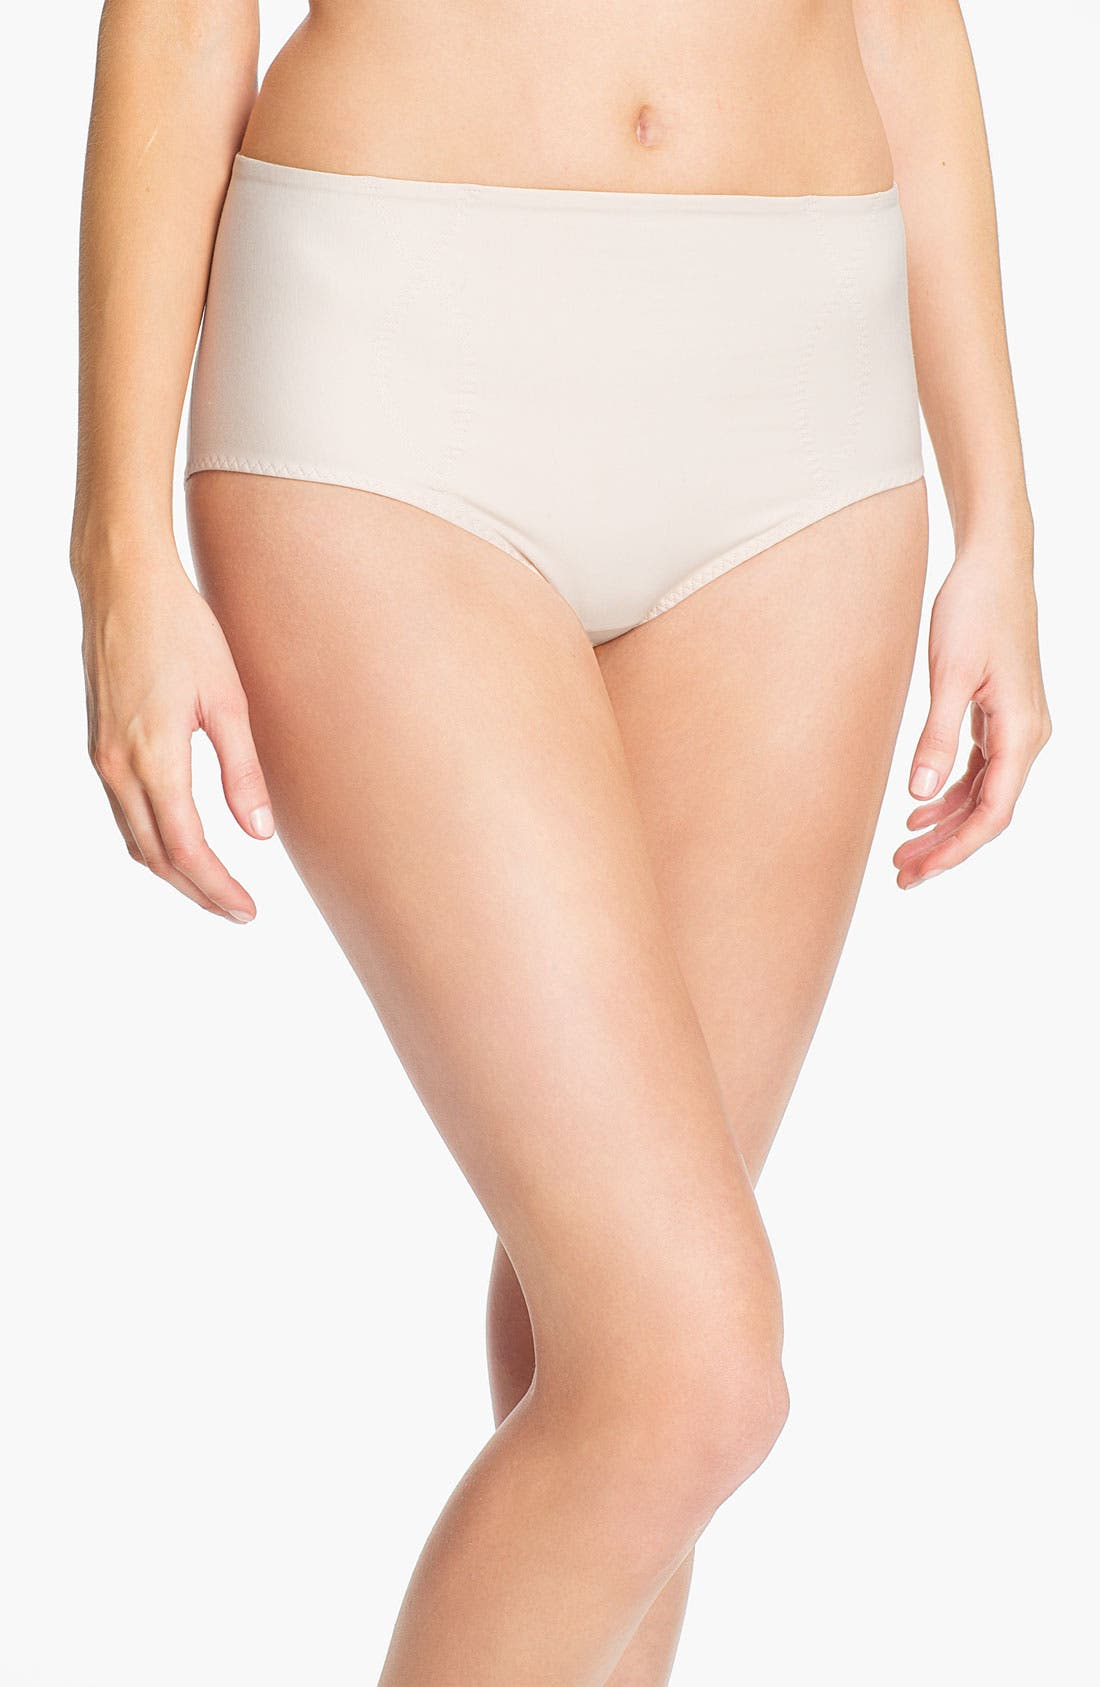 Alternate Image 1 Selected - SPANX® 'Spoil Me' Cotton Brief Shaper